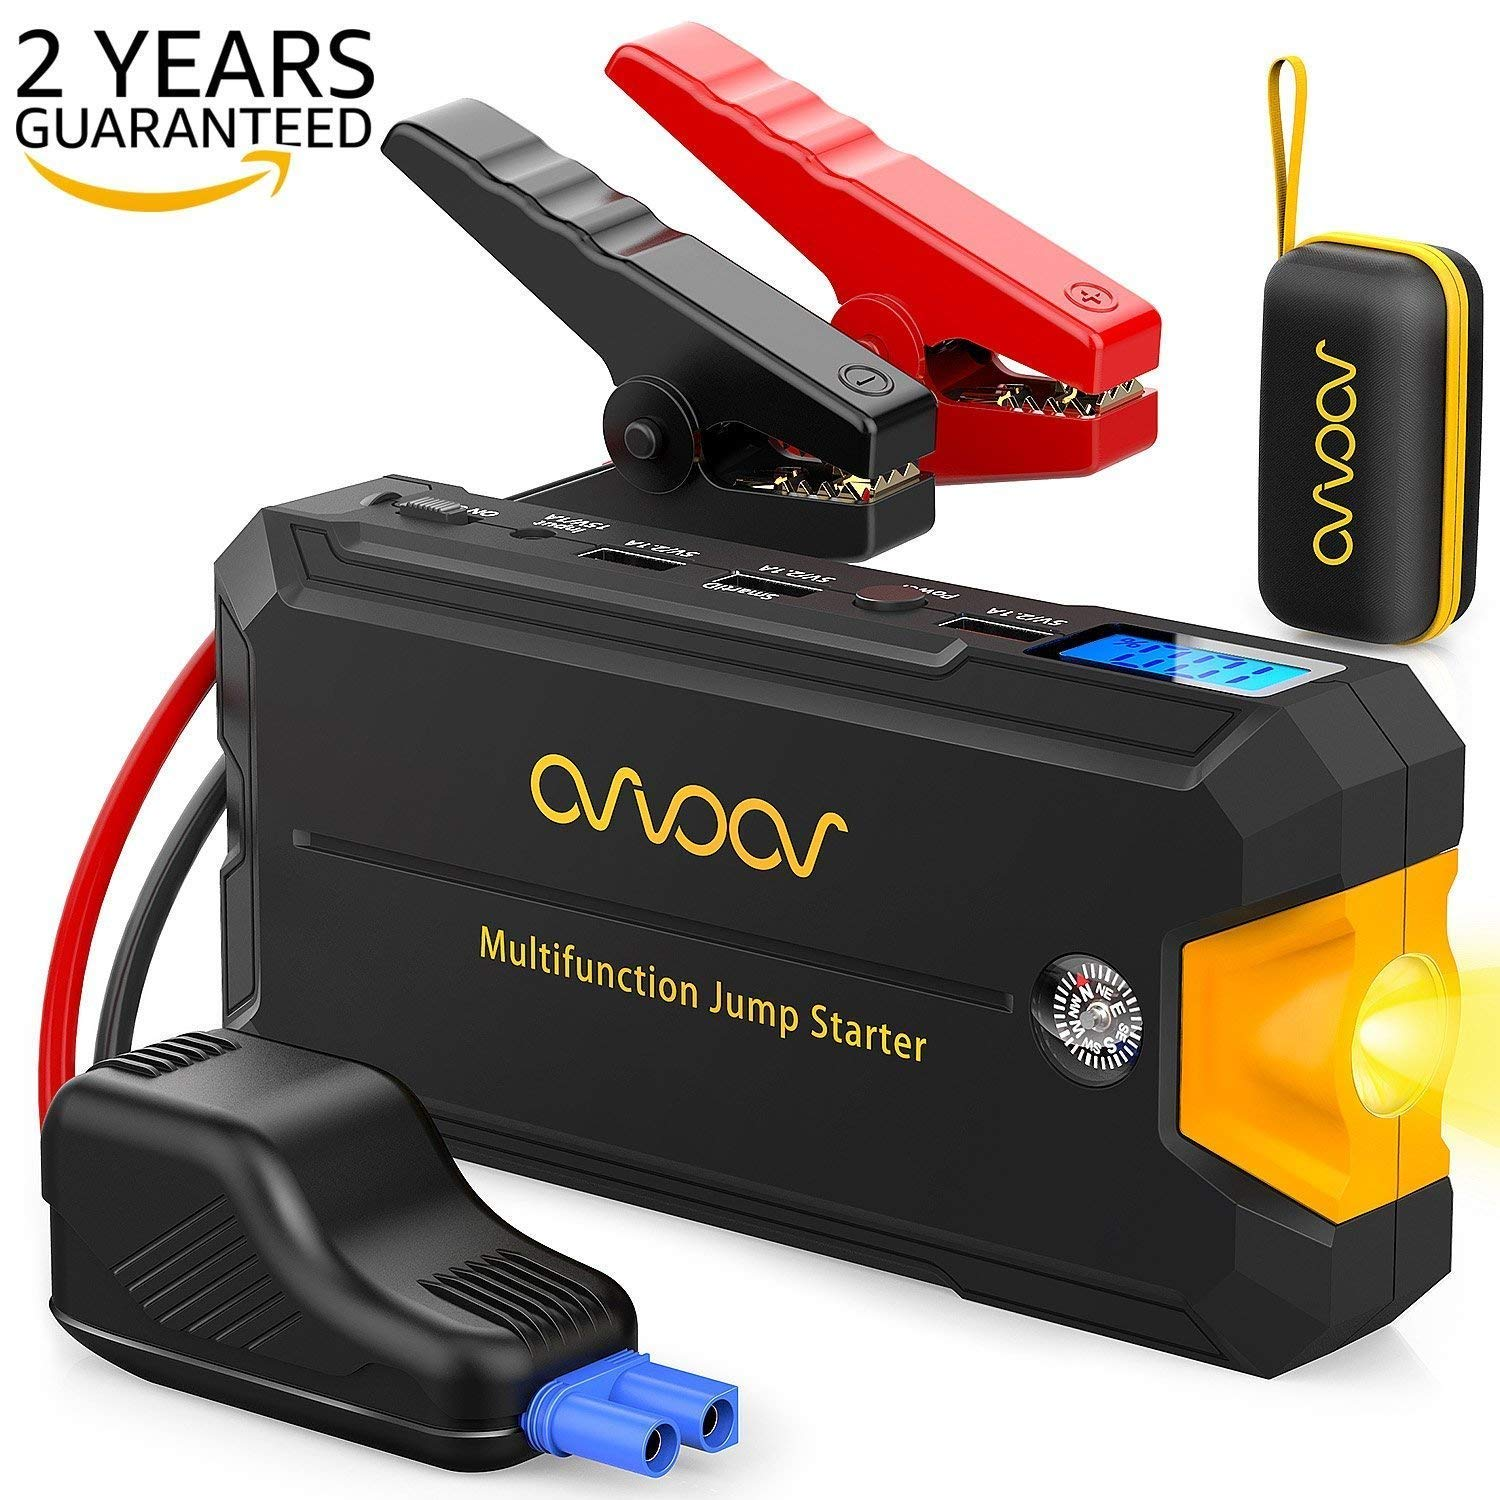 Portable Jump Starter Car Battery Charger, Upgraded 500A-800A Peak (up to 3-5L gas or diesel engine car) 12V Power Pack Battery Booster Power Bank with Smart Charging Port,Compass,LCD Screen